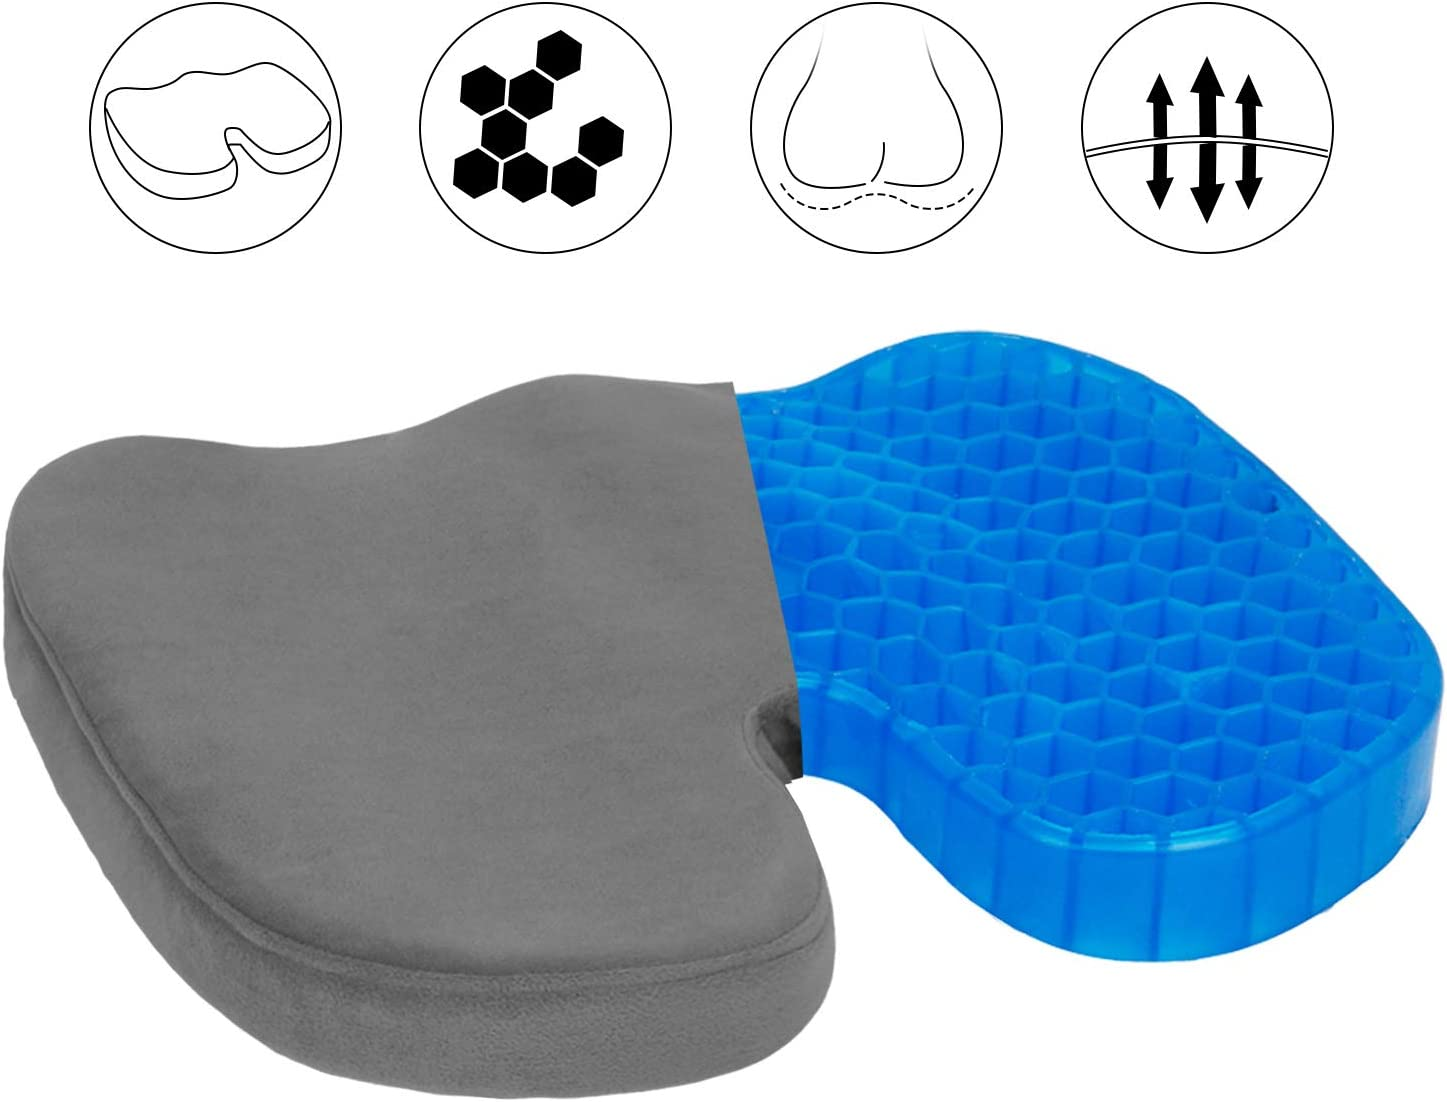 Cars and Wheelchair Sciatica and Tailbone Pain Relief Fit for Office Home Travels Asteri Orthopedic Honeycomb Gel Seat Cushion Lightweight Ergonomic Coccyx Cushion for Lower Back